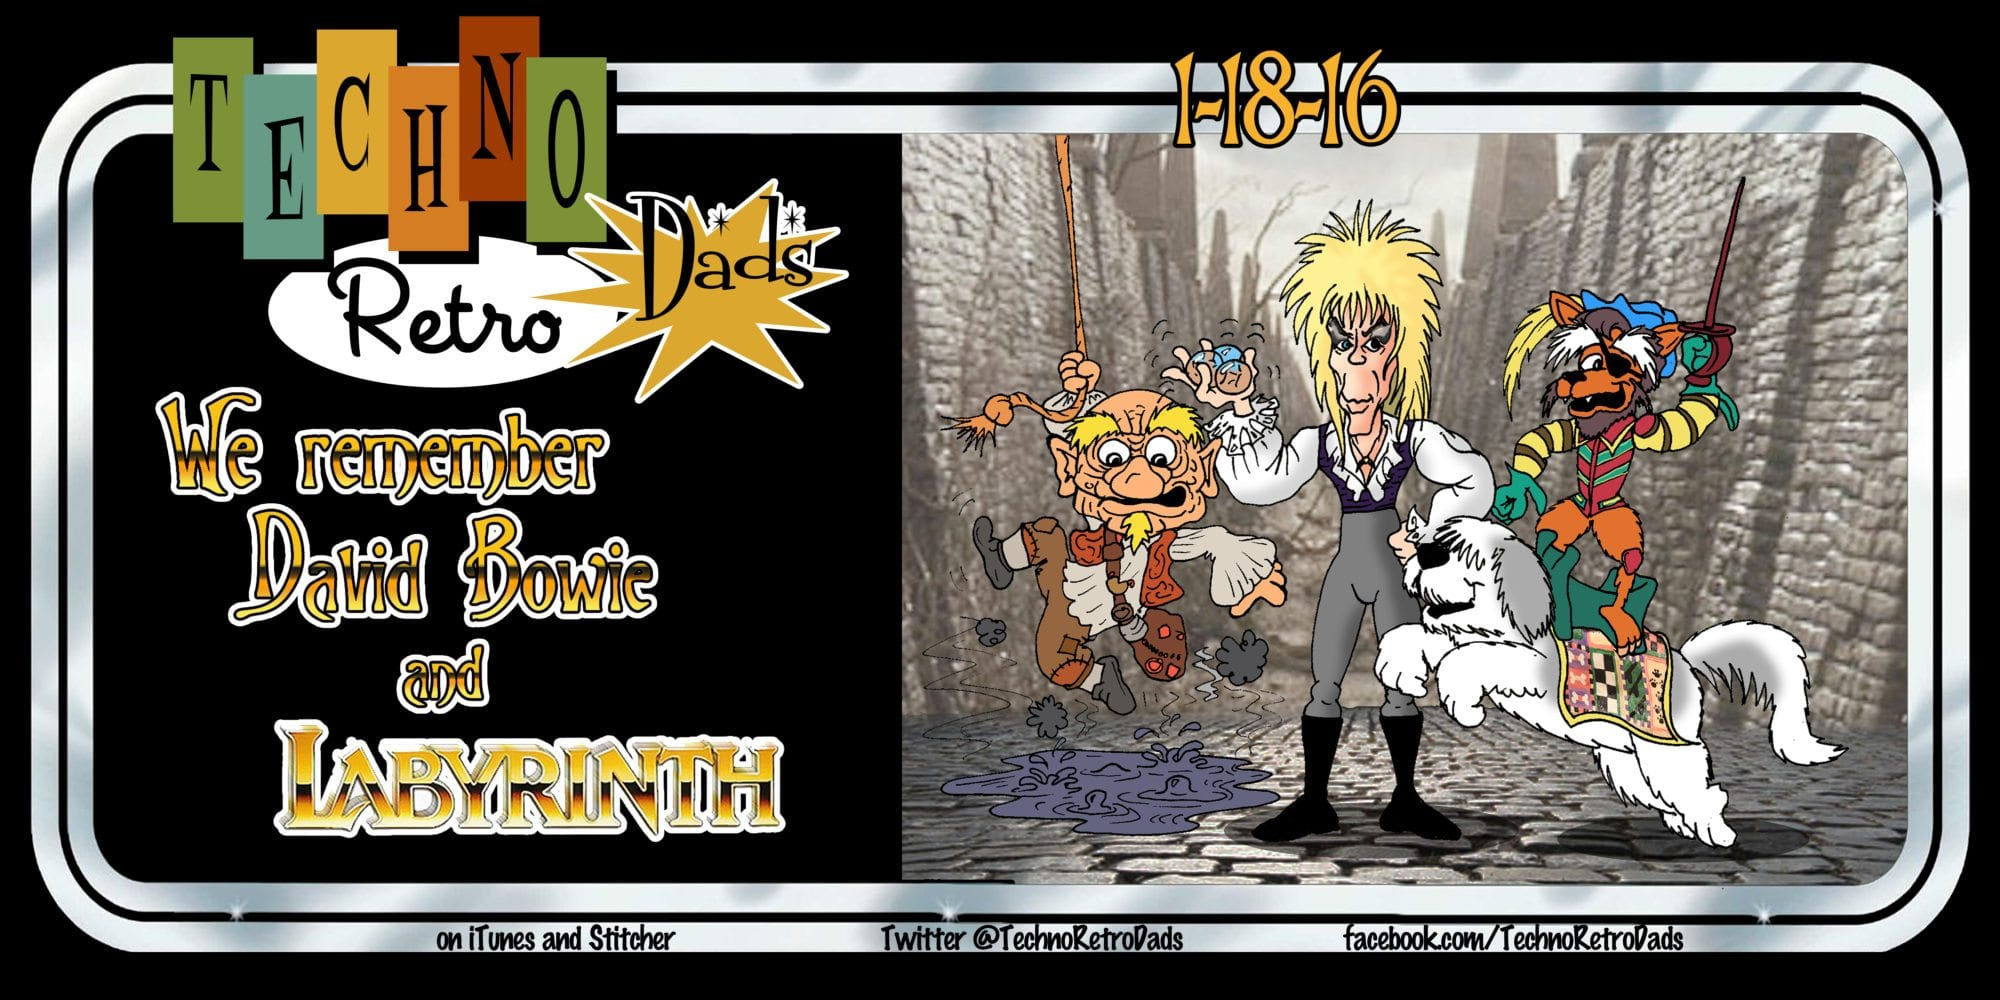 labyrinth, TechnoRetro Dads